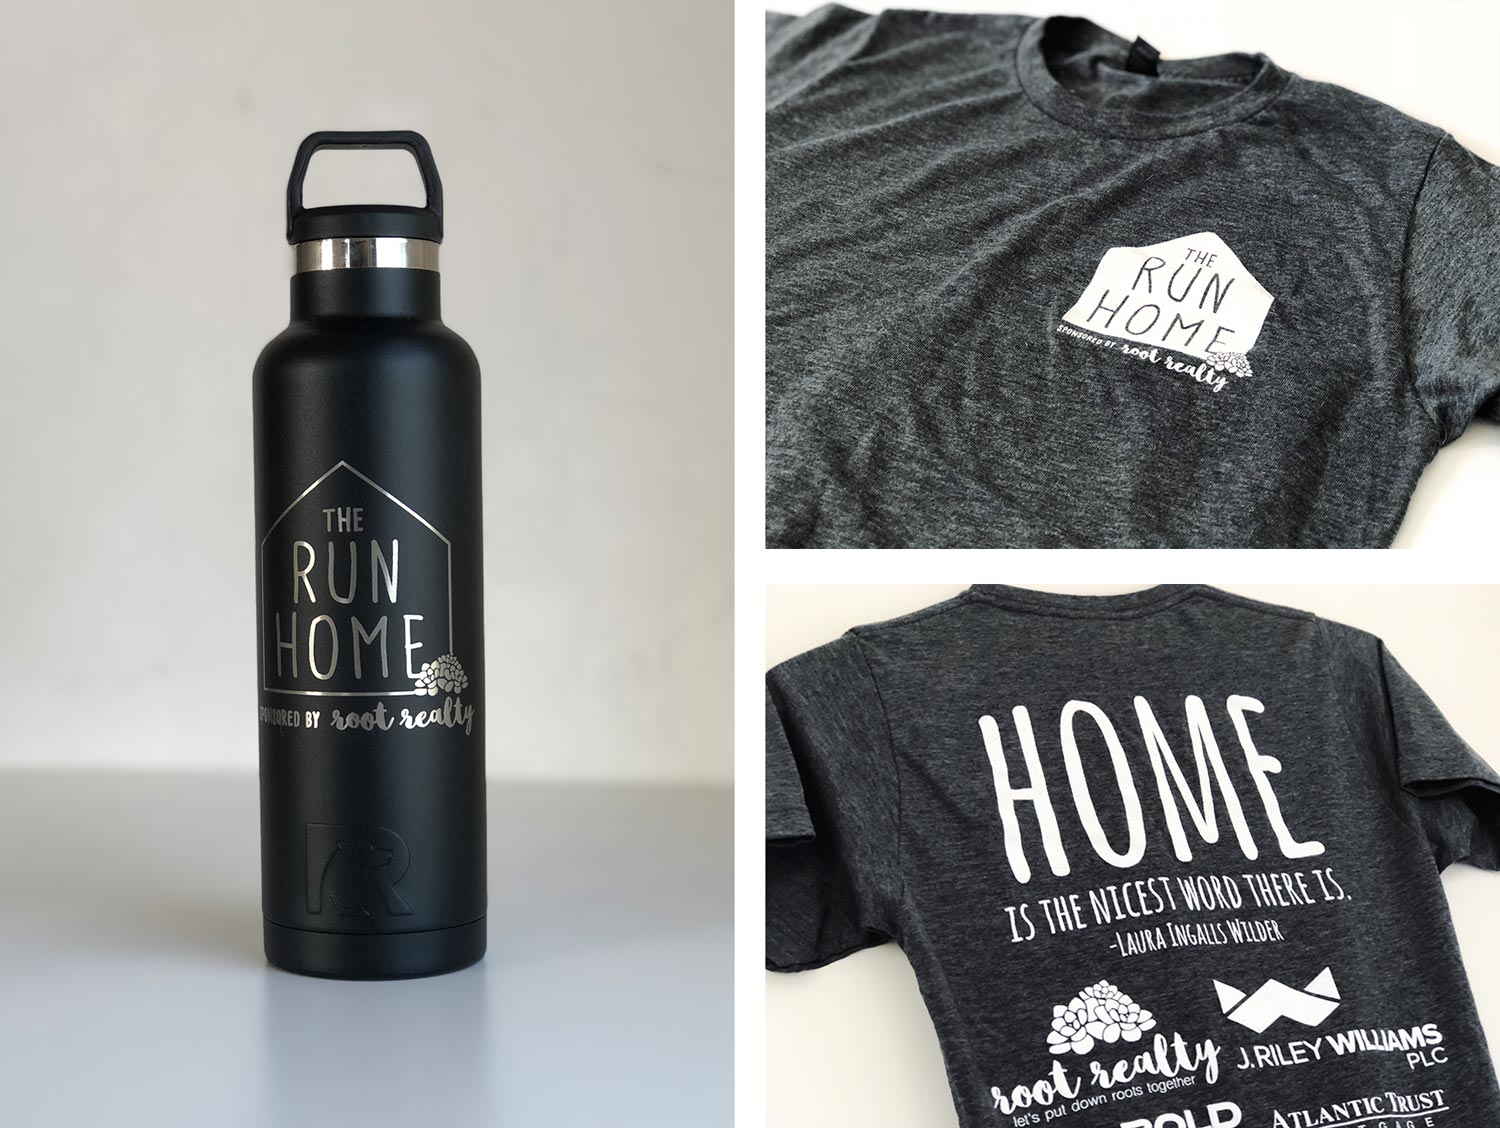 The Run Home 5K Water Bottle and T-shirt designs, front and back.